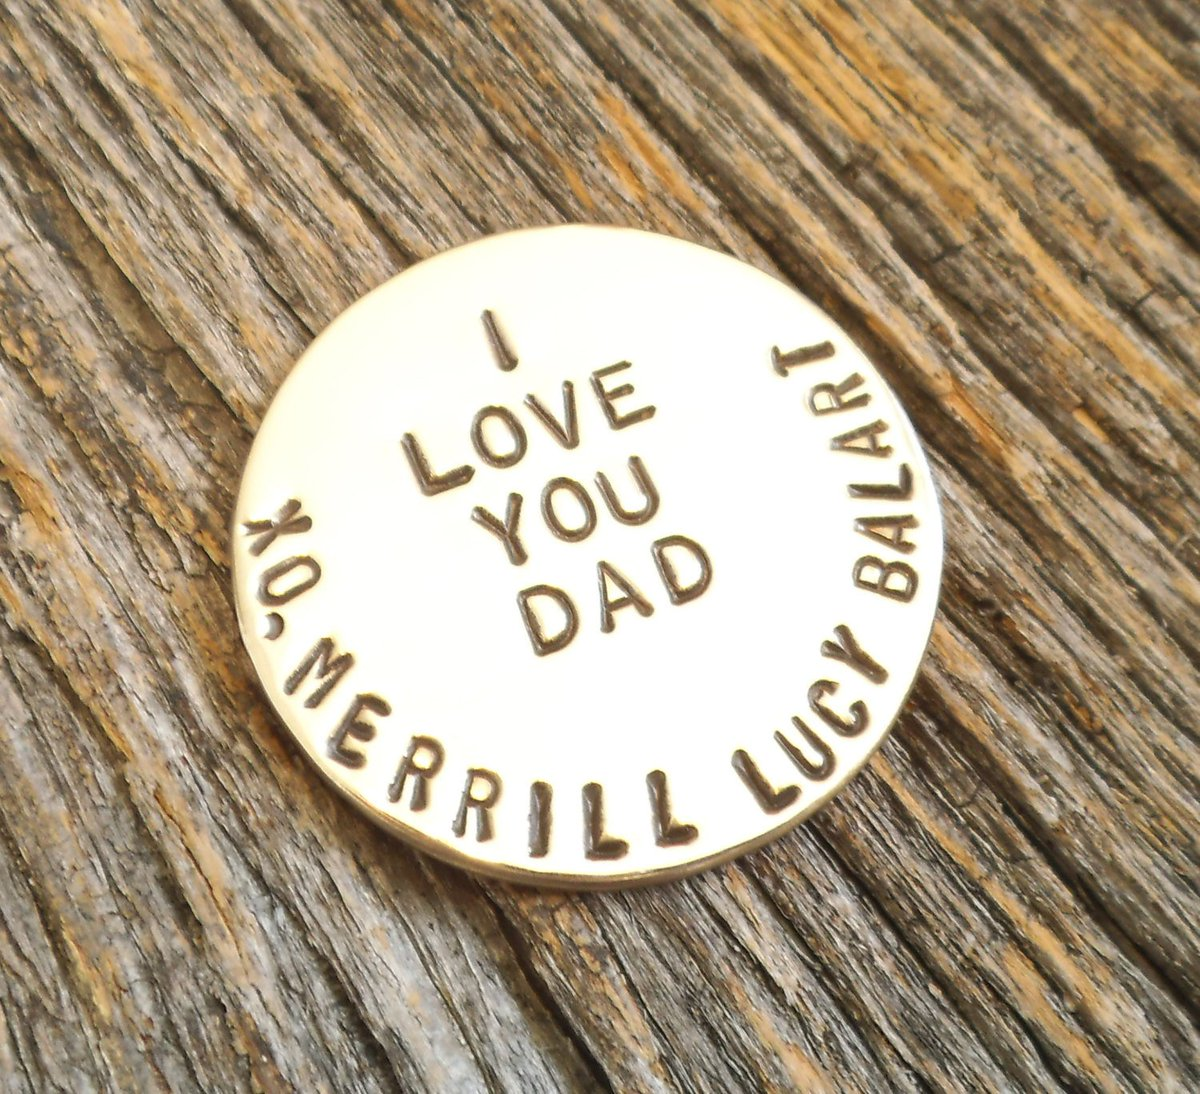 I Love You Dad - Personalized Golf Ball Marker http://tuppu.net/a444478a #Shopify #CandTCustomLures #Personalized_golf